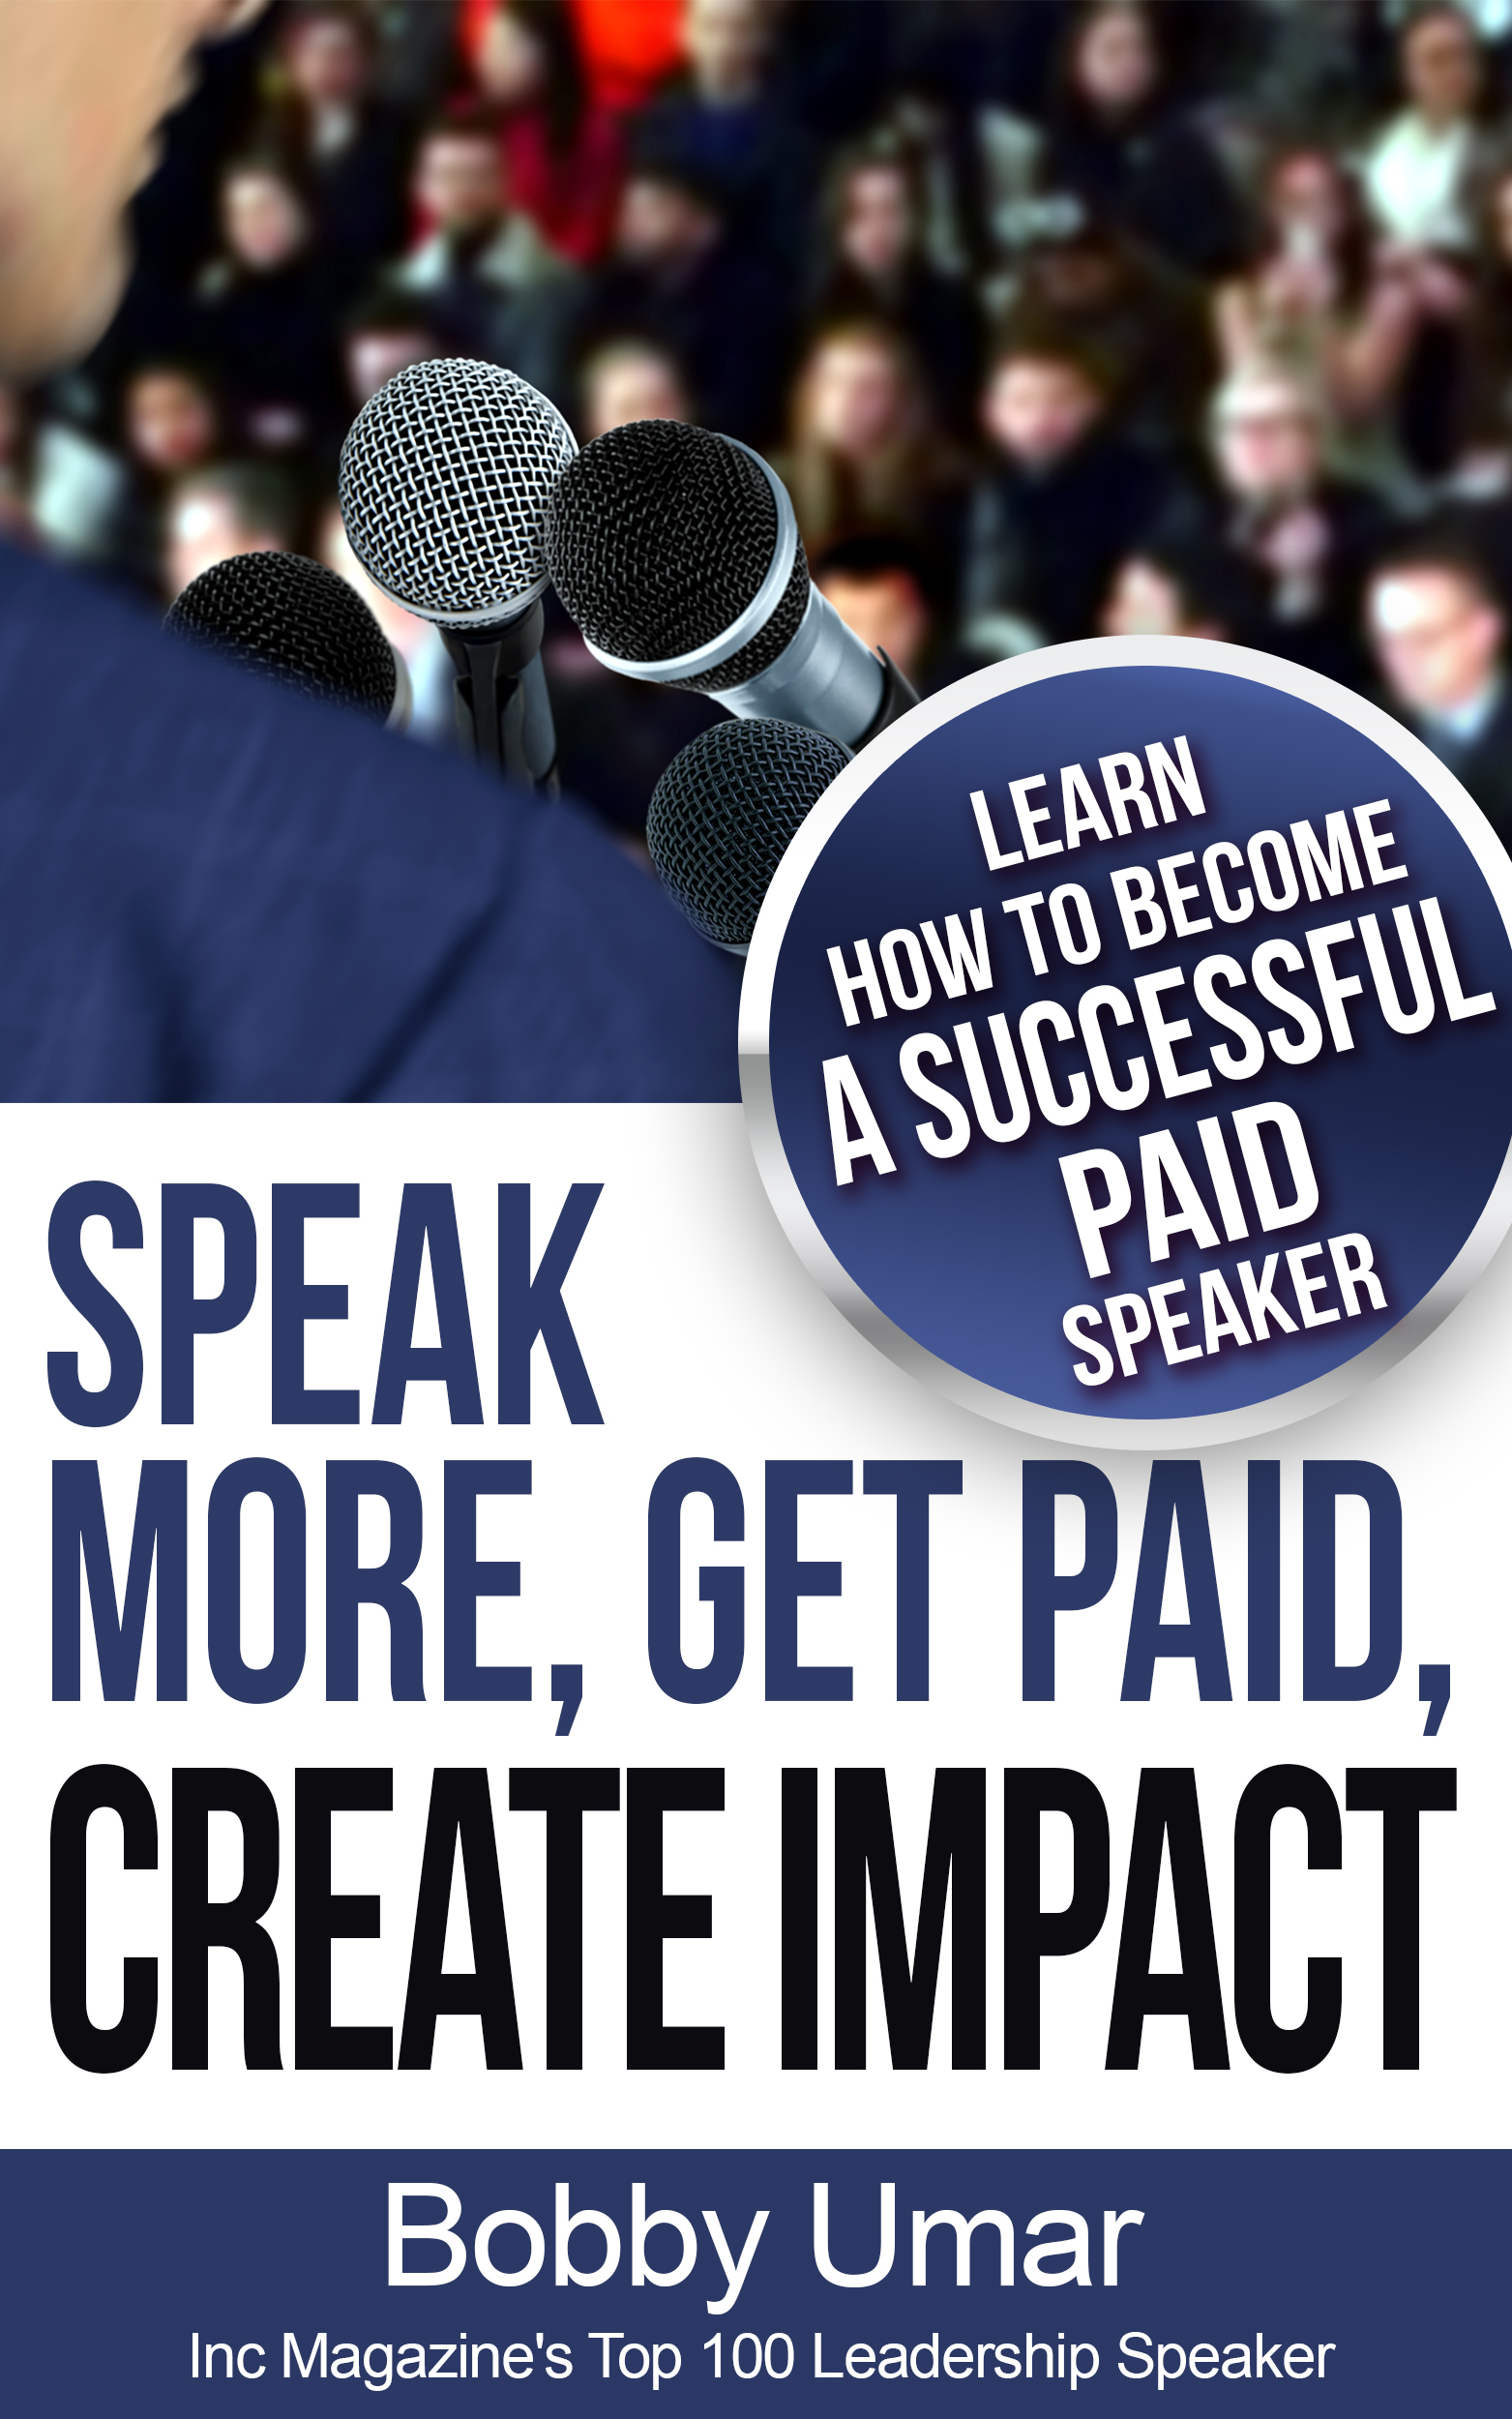 SPEAK_MORE_GET_PAID_MAKE_IMPACT.jpg